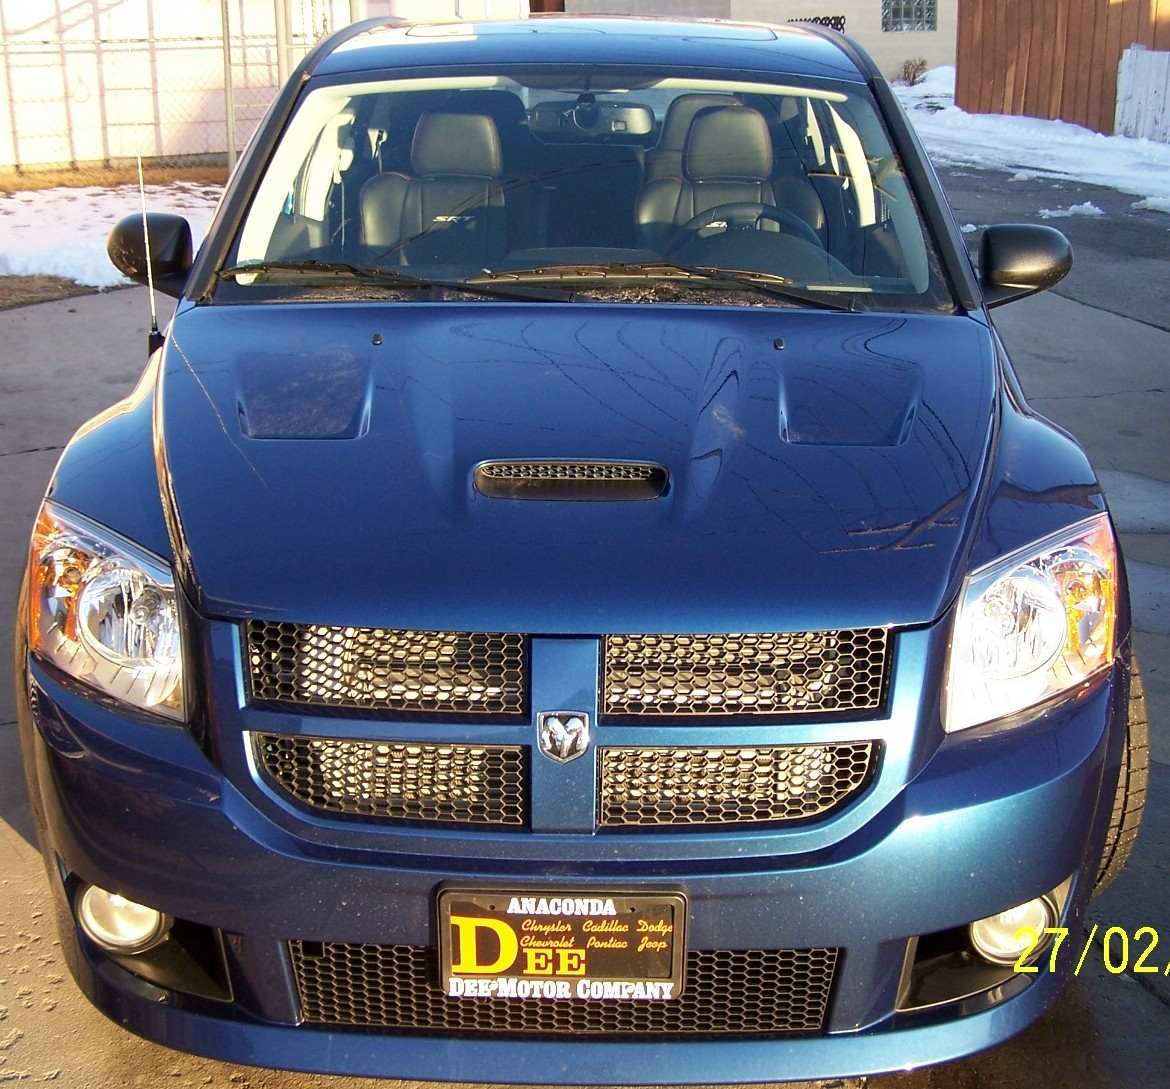 gumper 2009 Dodge Caliber